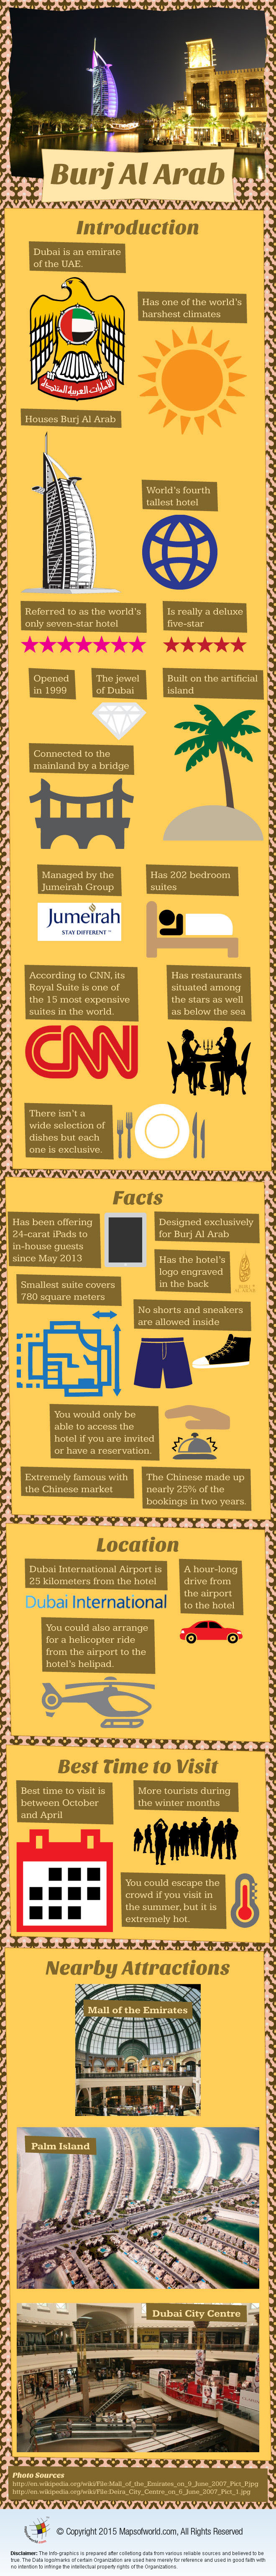 Burj Al Arab - Facts & Infographic